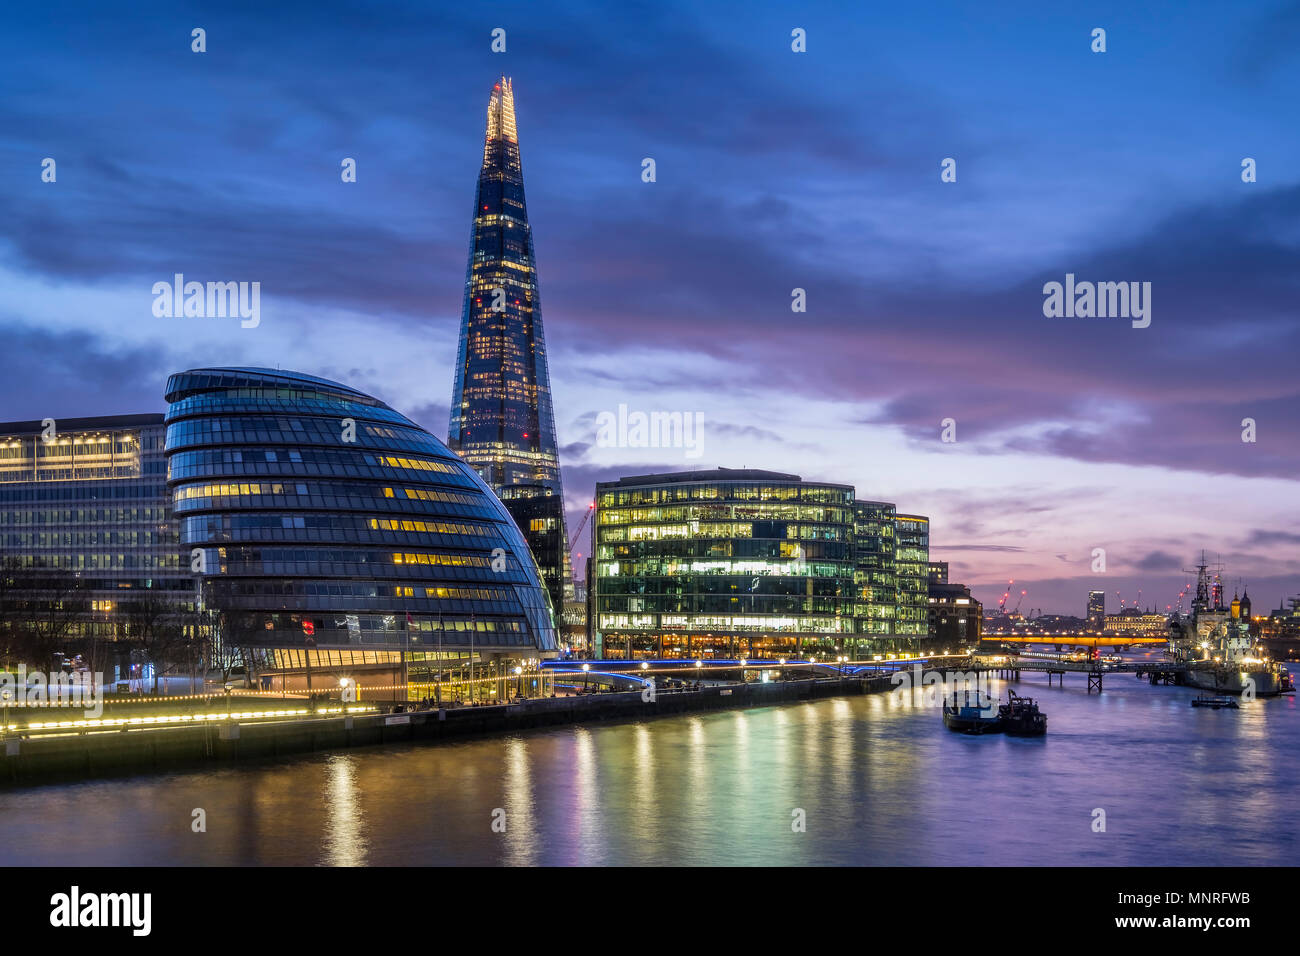 City Hall, The Shard and River Thames at night, London, England, UK - Stock Image